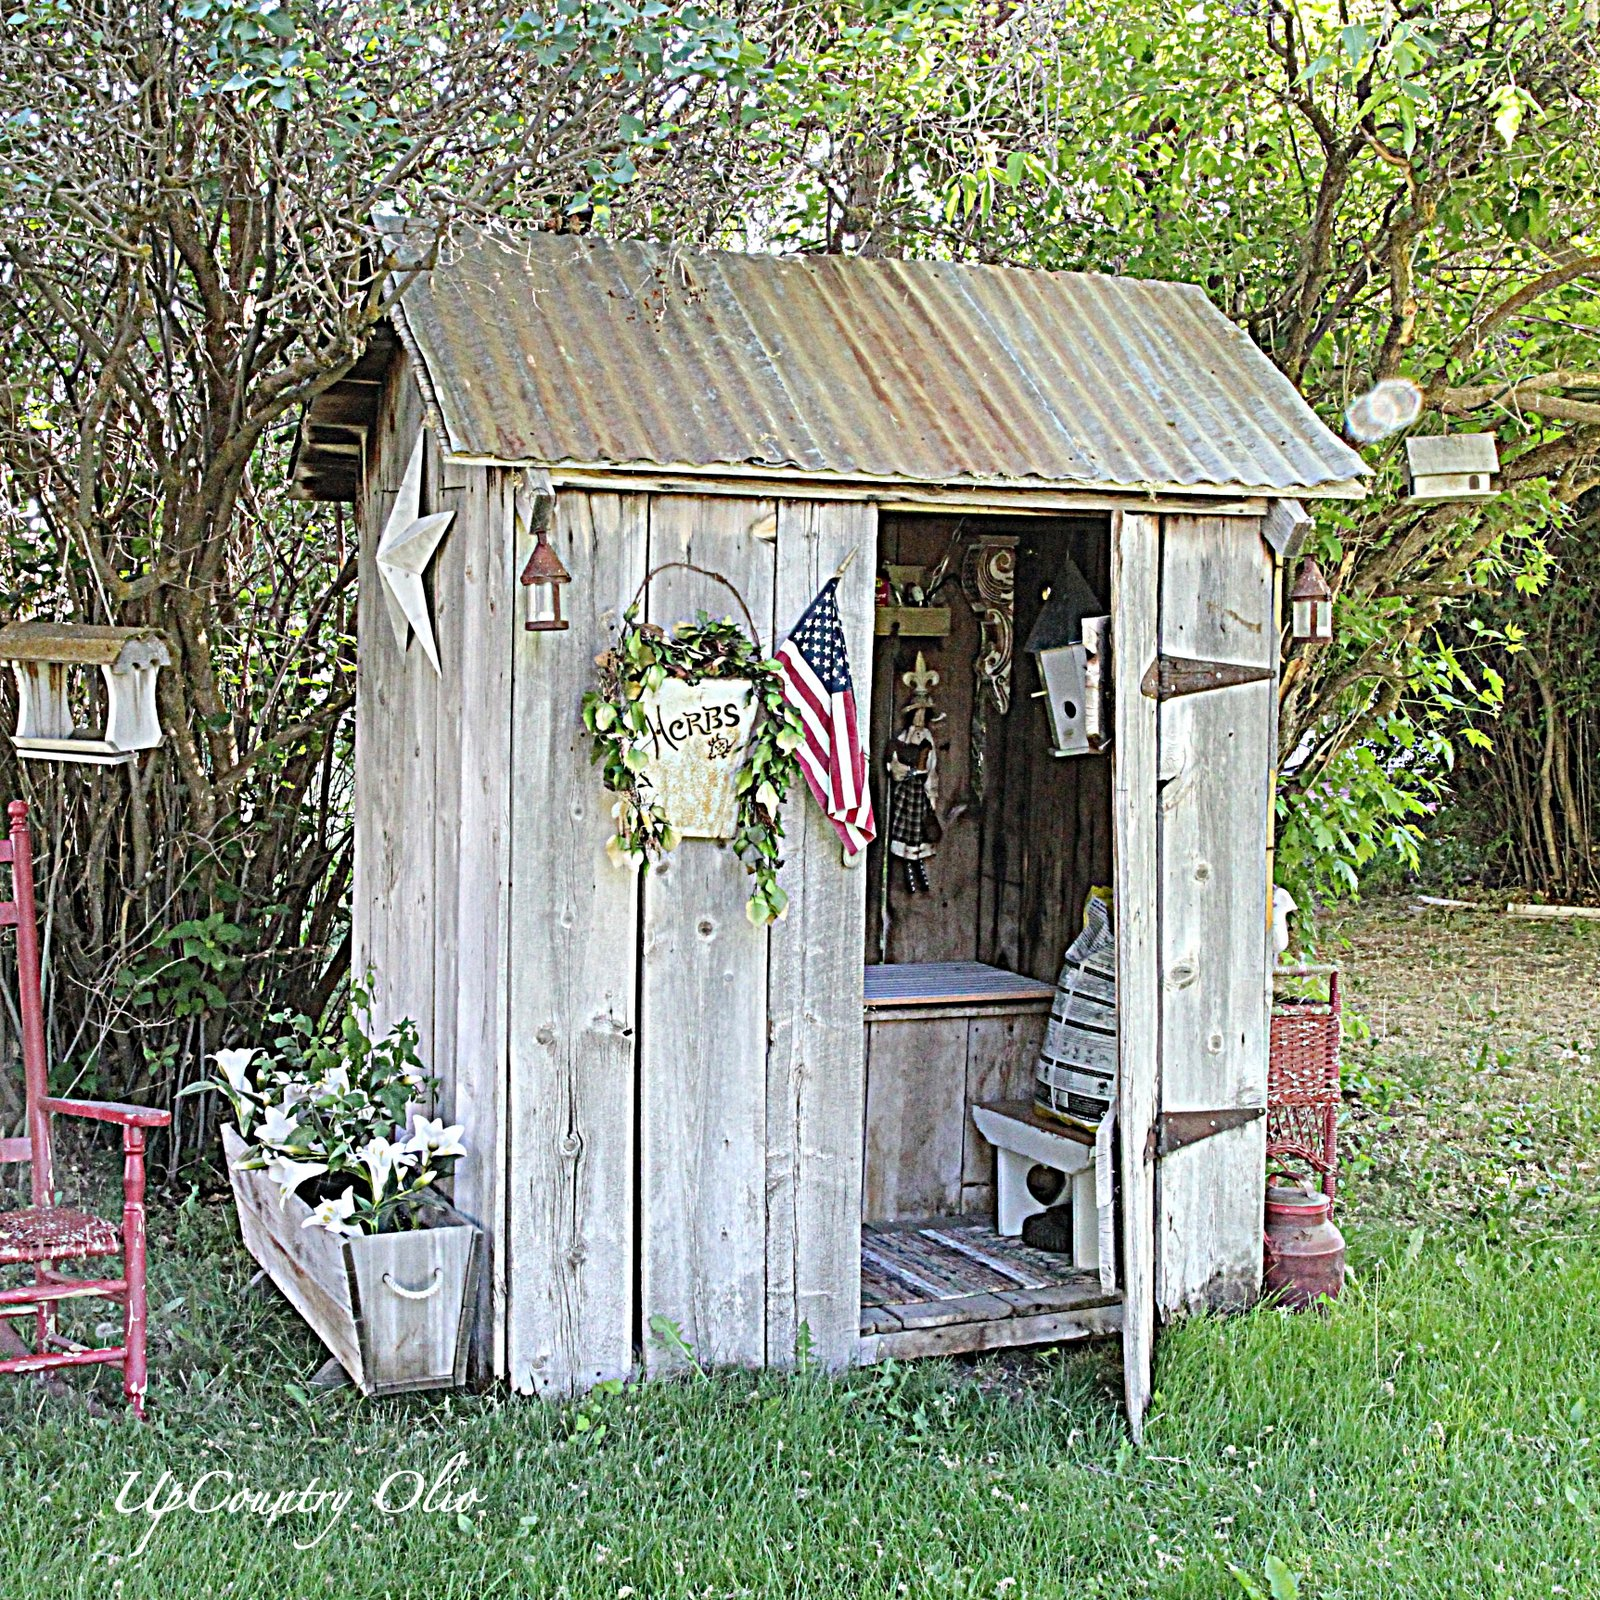 UpCountry Olio The Potty Shed